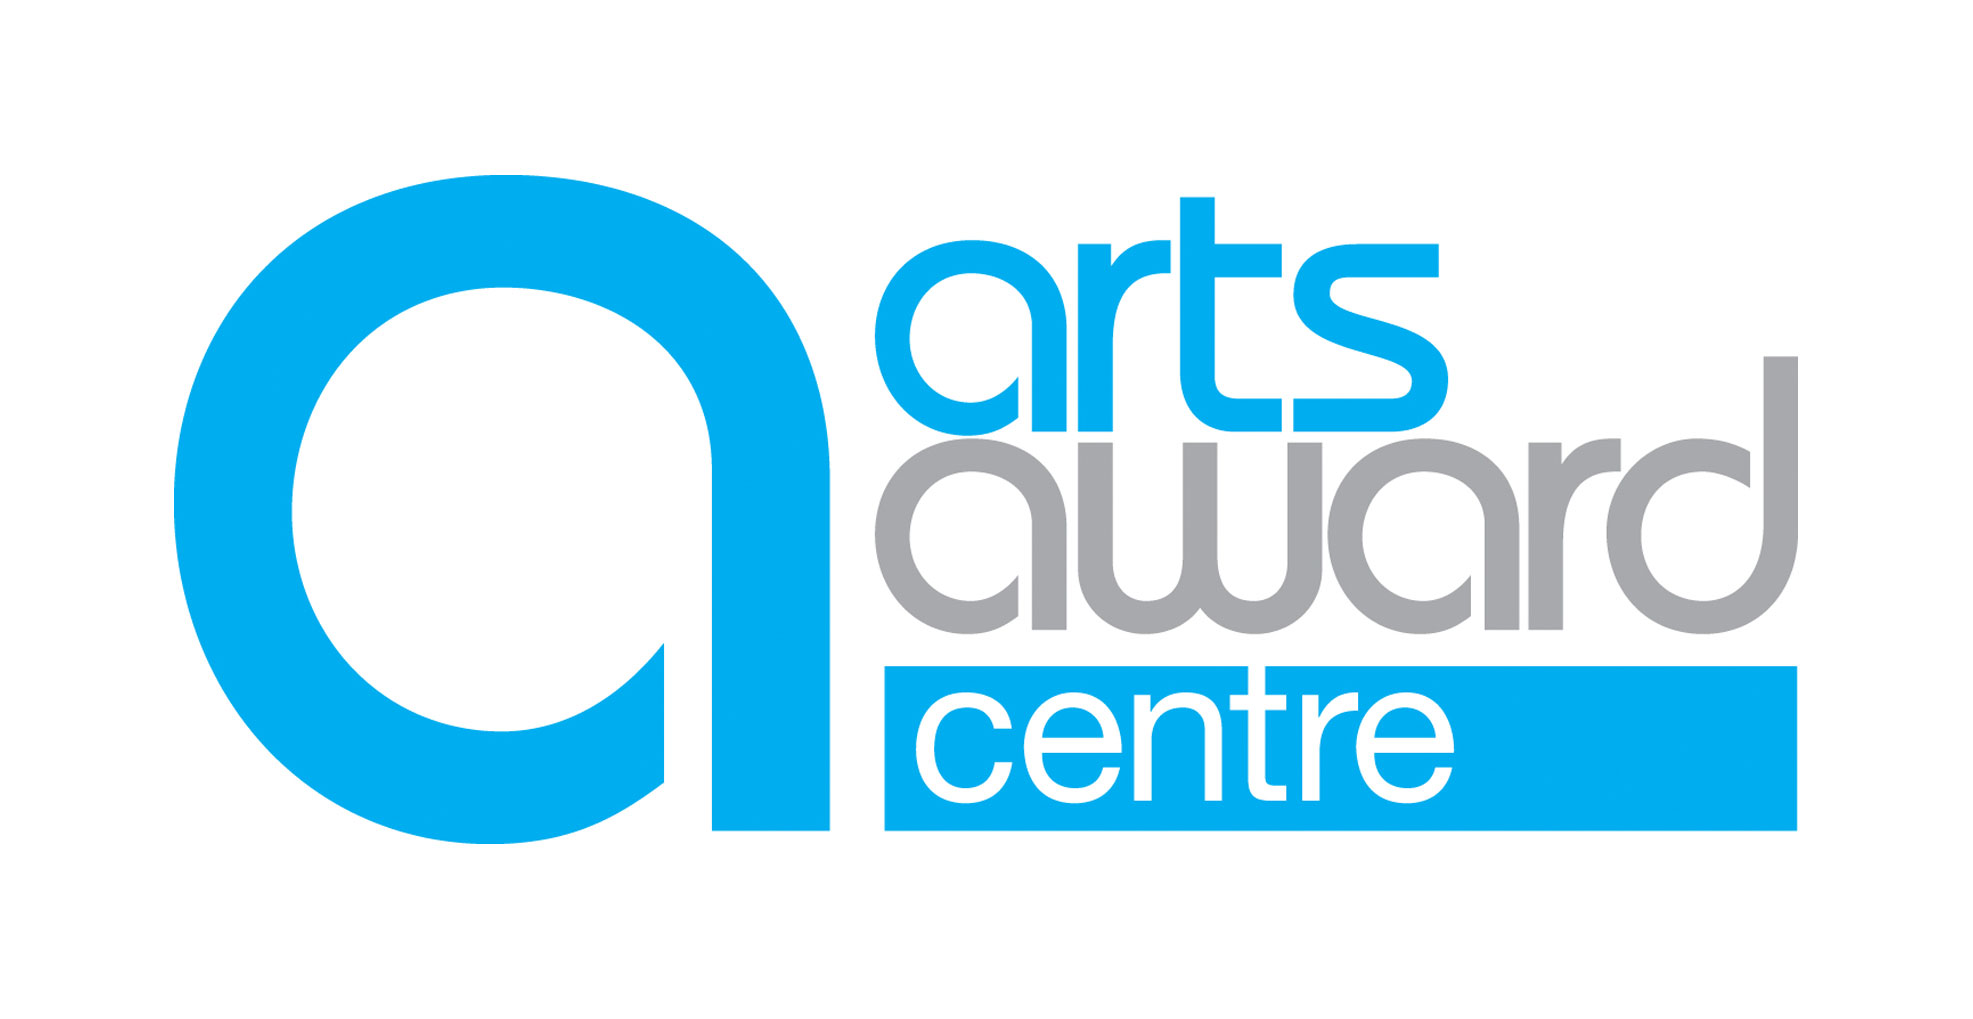 We proudly supportArts Award - NOCTURN operates as an Arts Award centre adding an extra incentive to our range of educational packages.